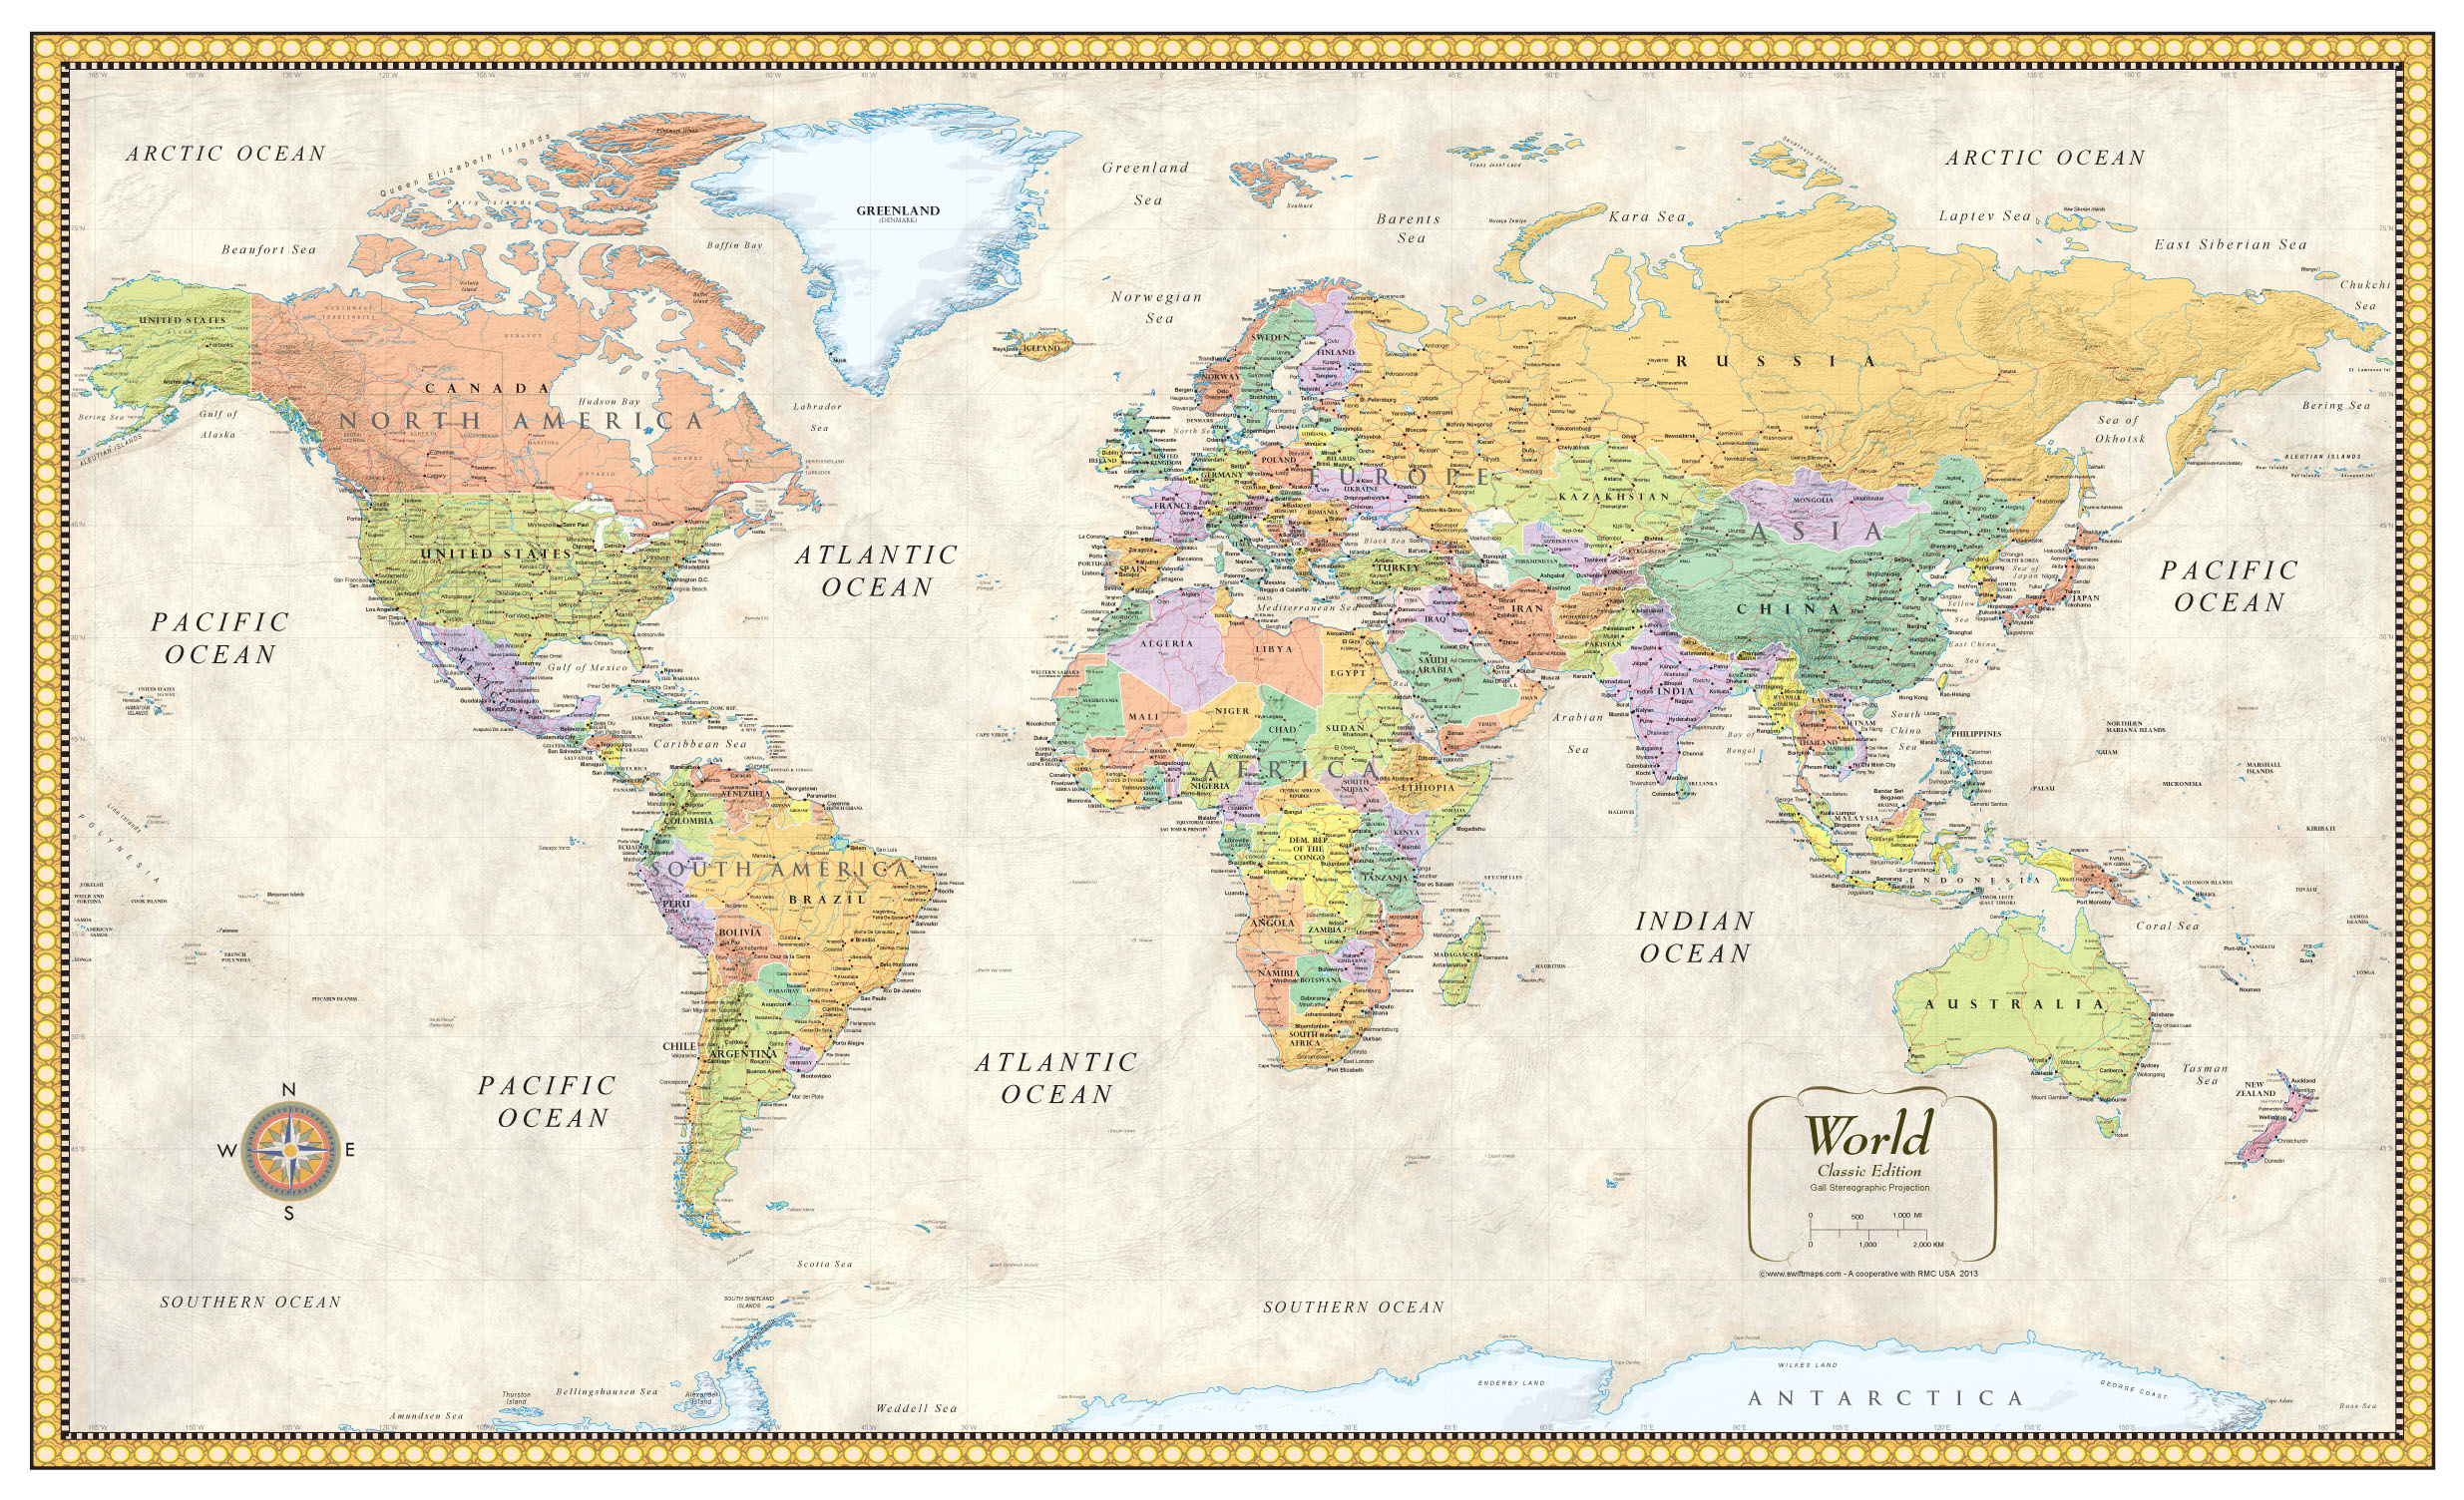 World Wall Maps Archives - SWIFTMAPS.com WORLD MAP POSTER